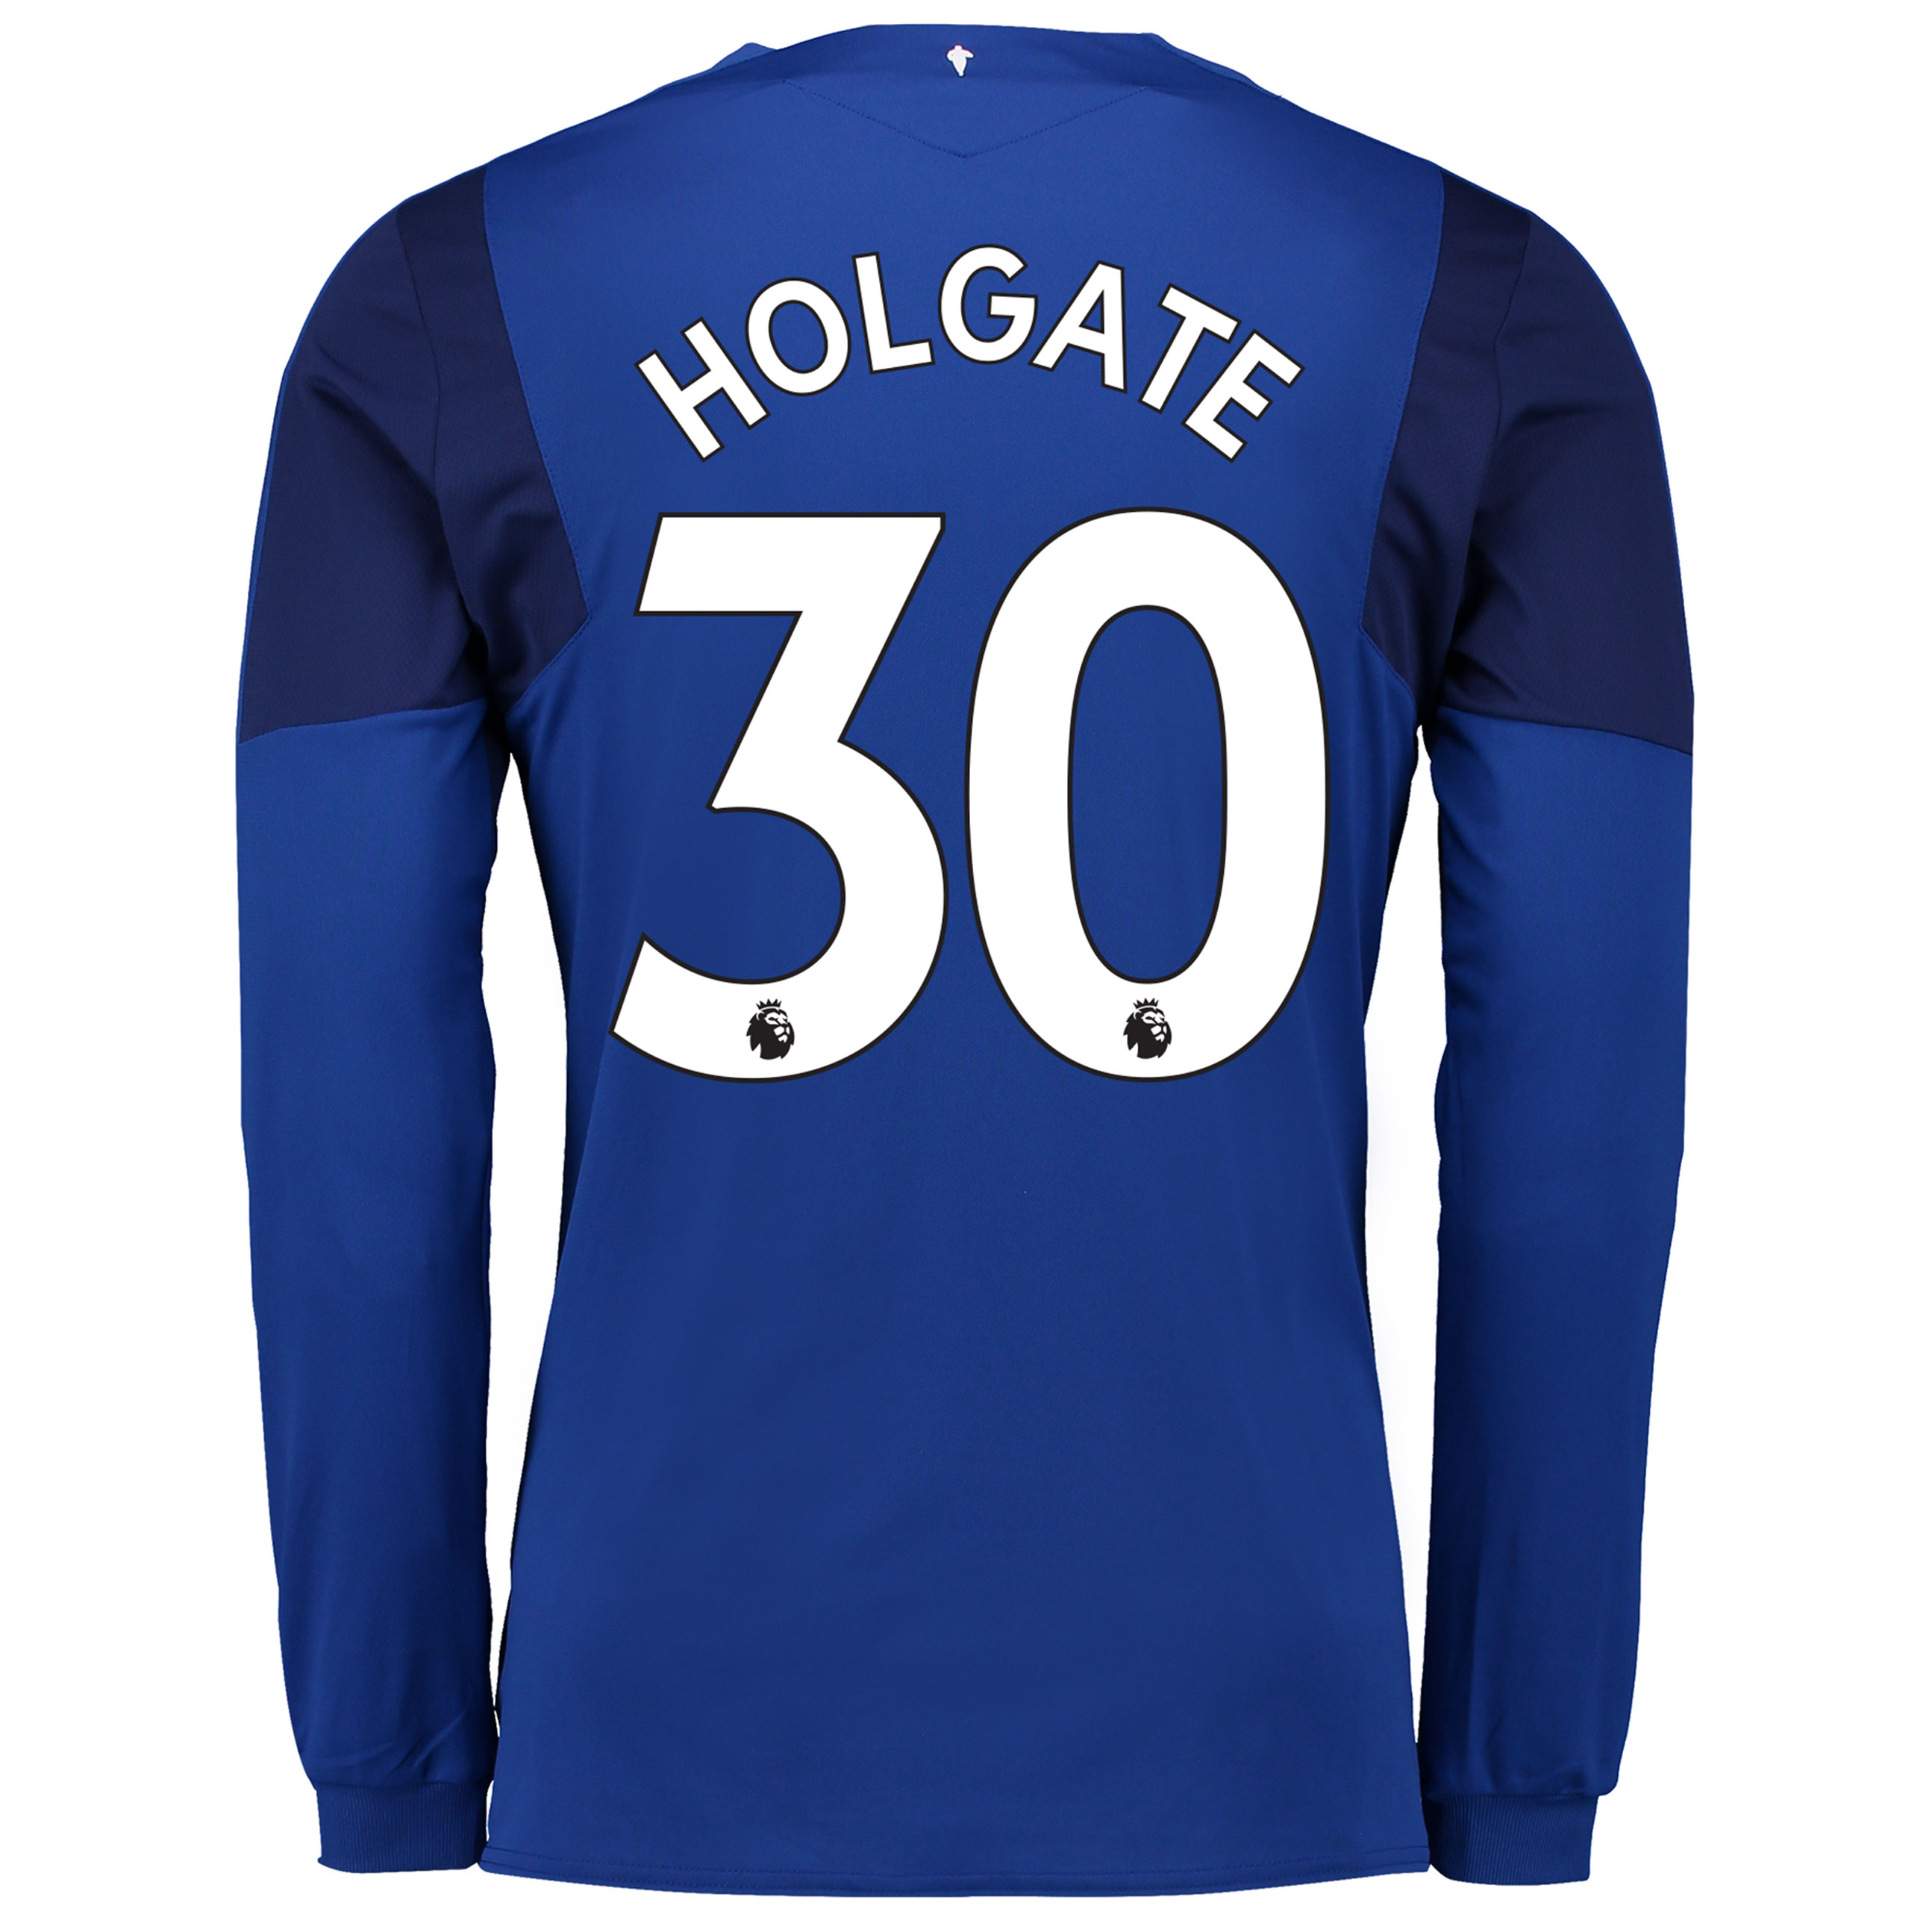 Everton Home Shirt 2017/18 - Junior - Long Sleeved with Holgate 30 pri